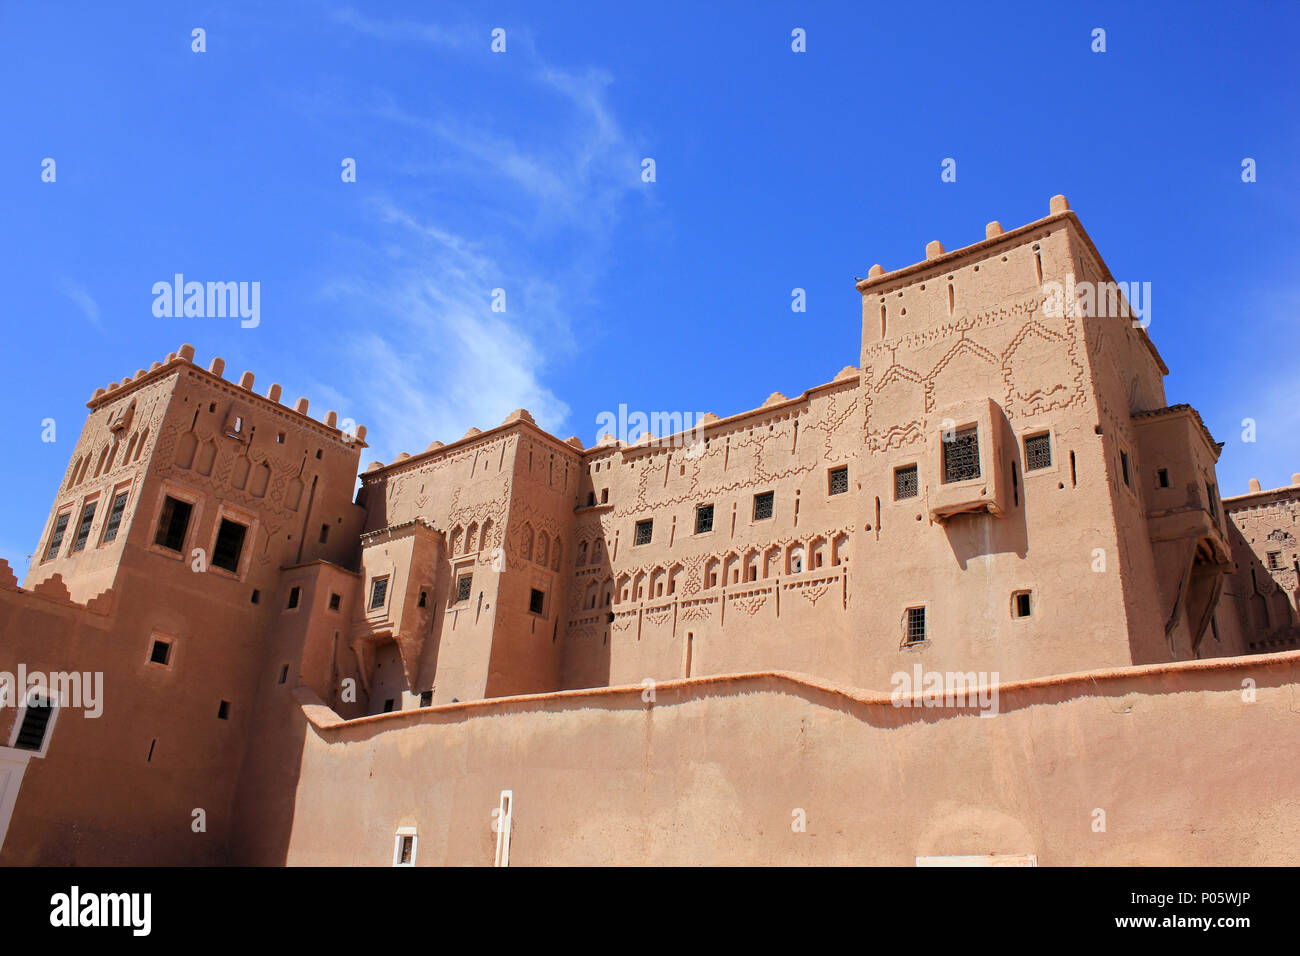 Taourirt Kasbah Ouarzazate, Morocco - Stock Image